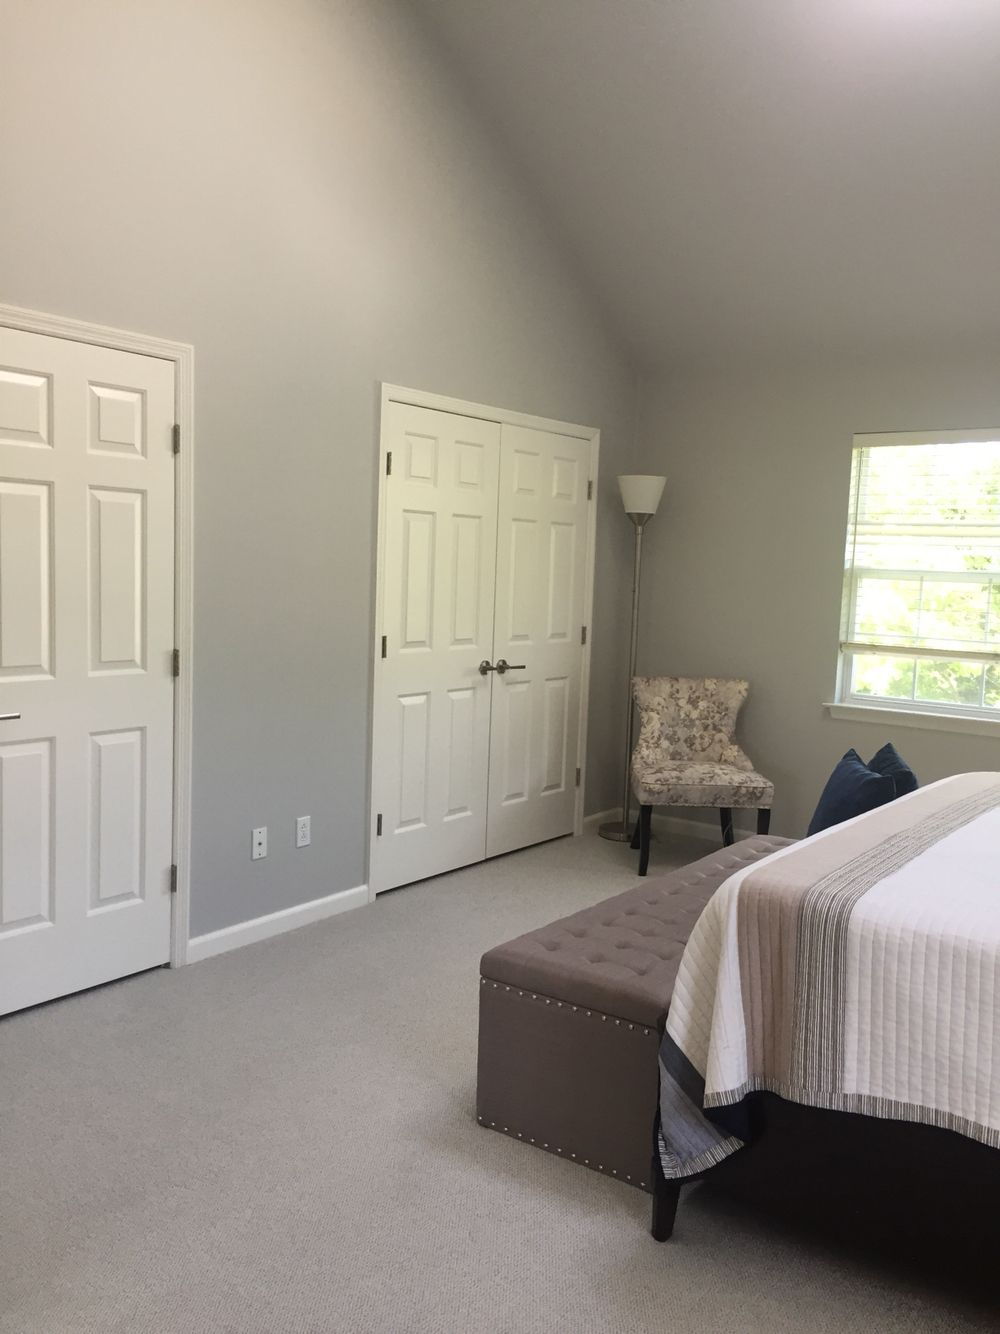 The Master Benjamin Moore Stonington Gray White Dove Trim Ceiling 50 Lighter Stonington Bedroom Makeover